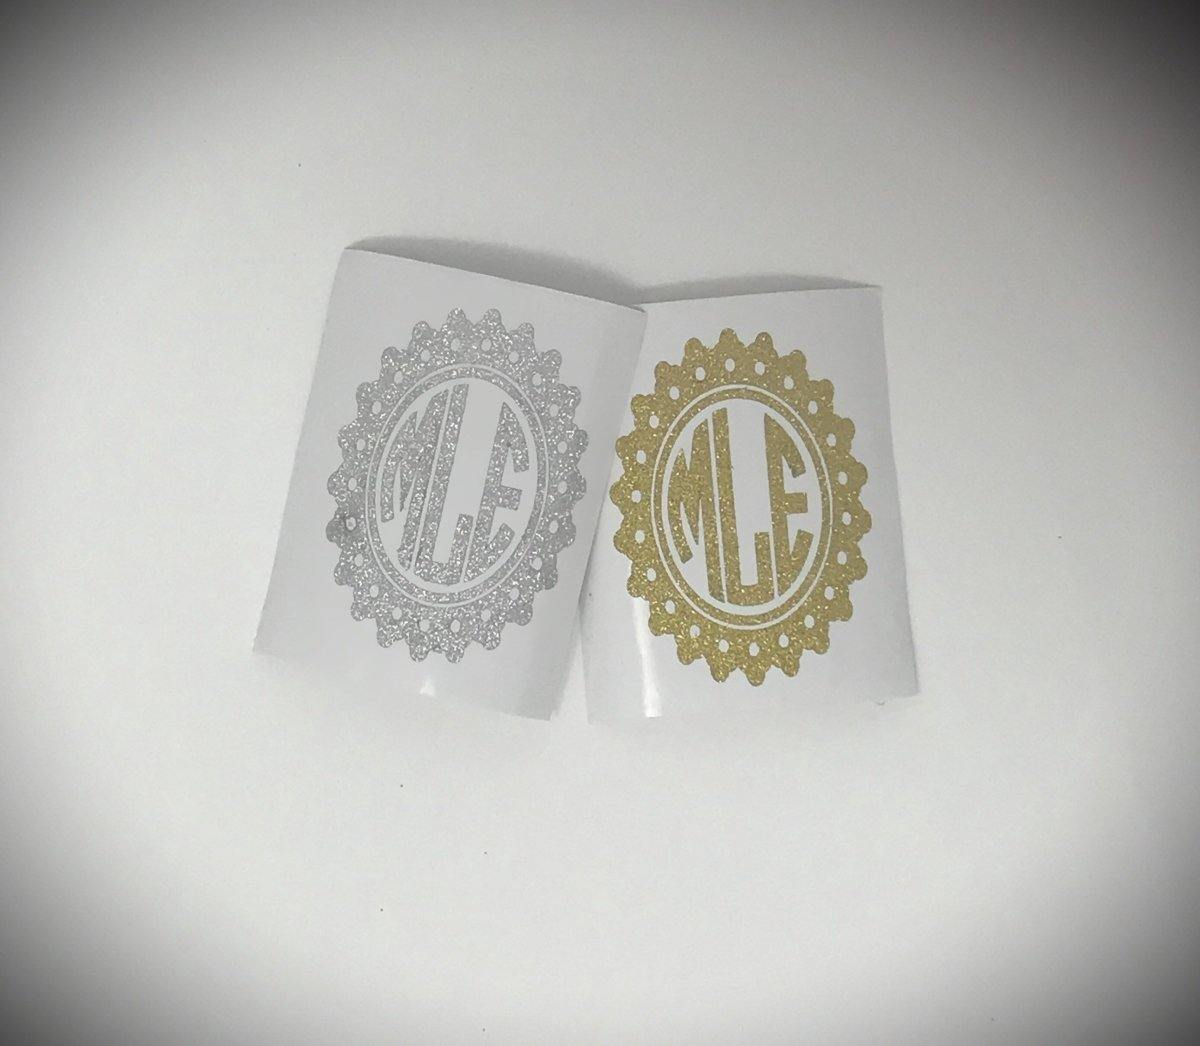 Phone Decals - Monogramed cellphone decal - This & That Solutions